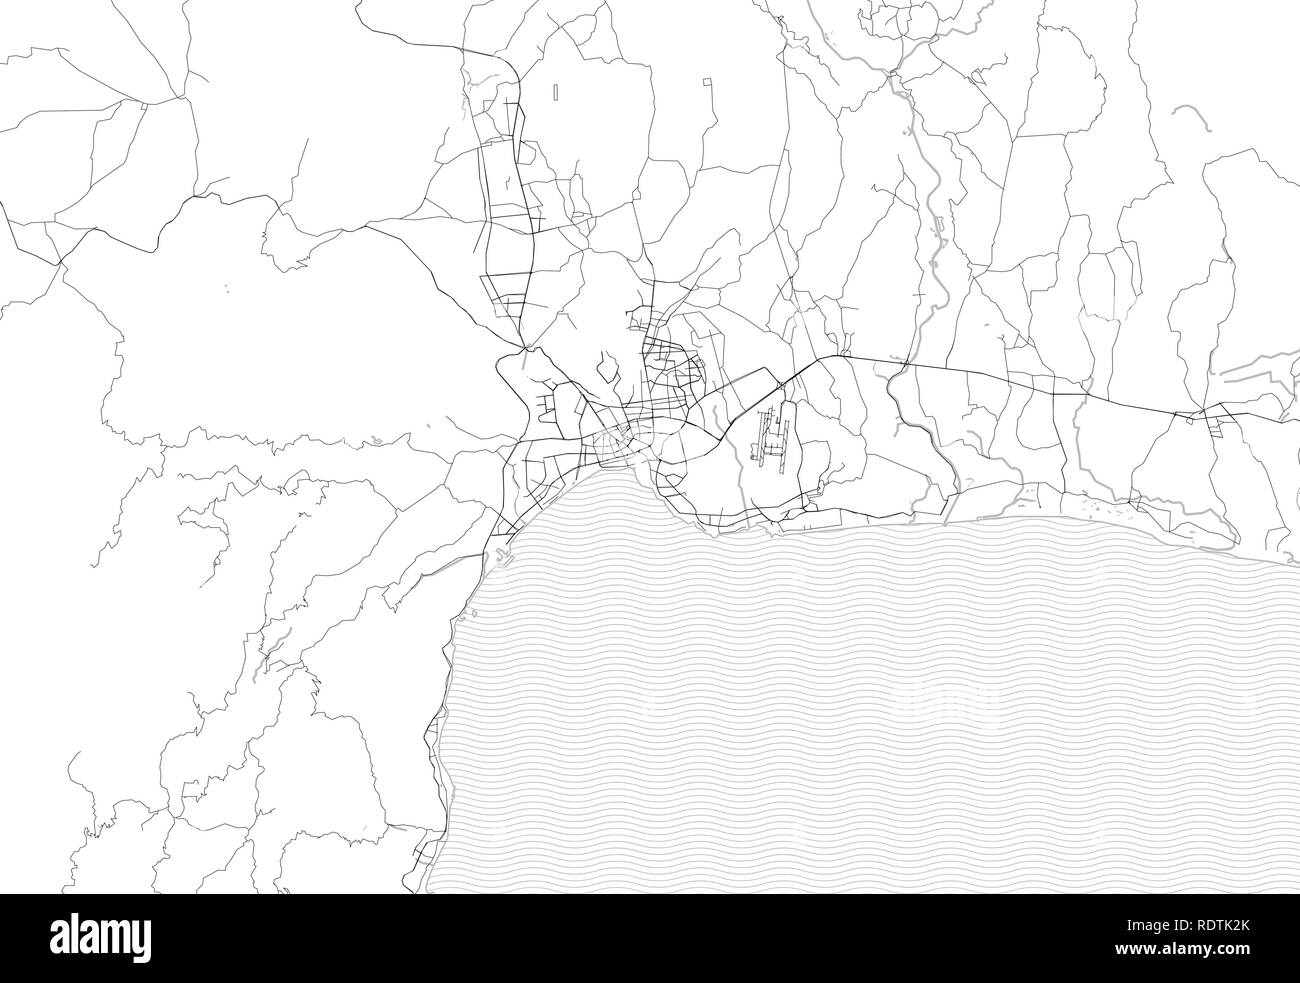 Area map of Antalya, Turkey. This artmap of Antalya contains geography lines for land mass, water, major and minor roads. - Stock Image